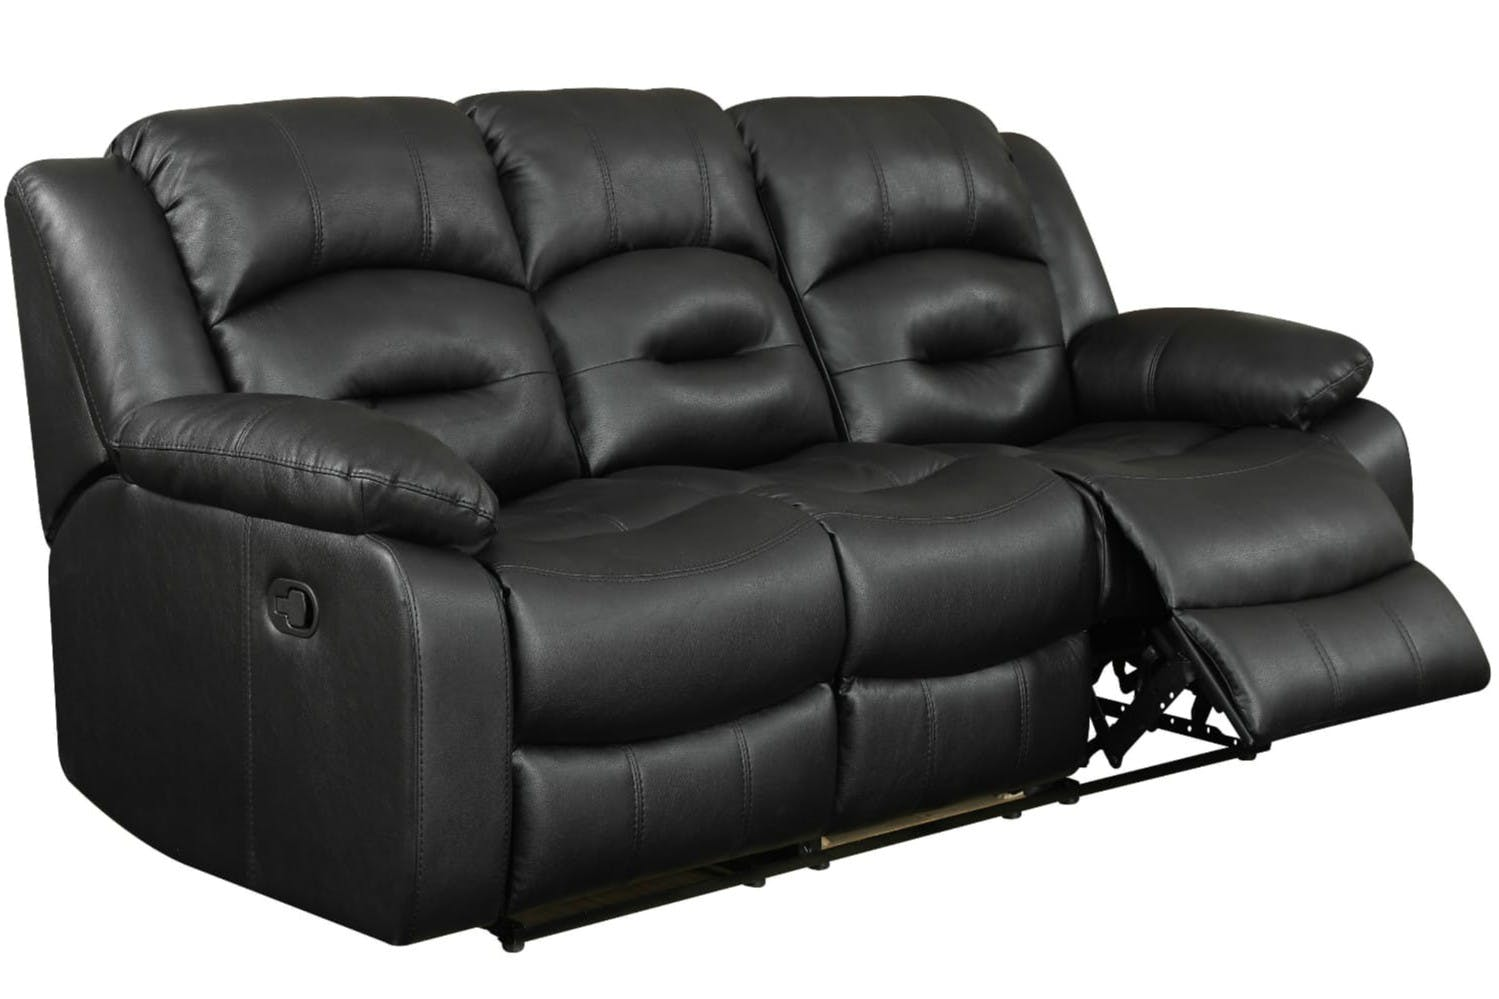 Hunter 3 Seater Recliner Sofa Black